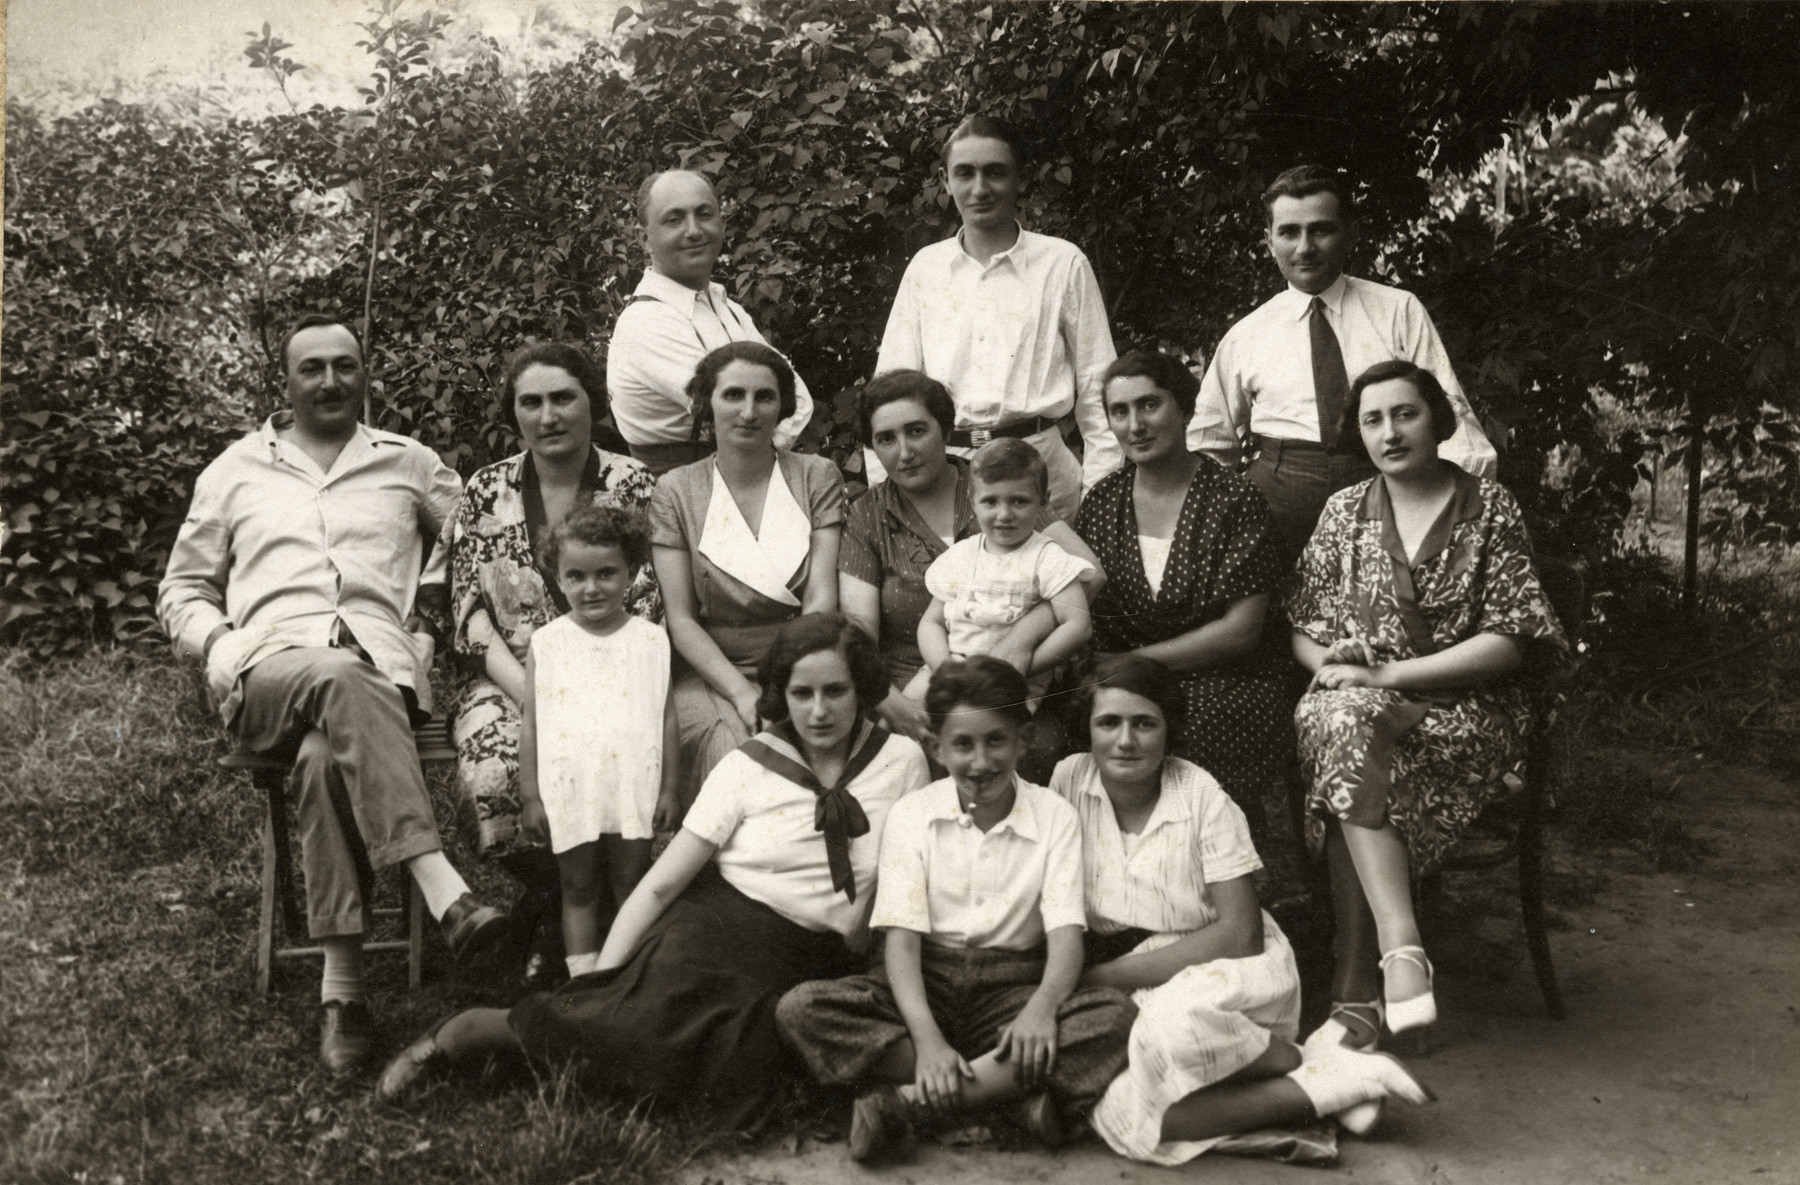 The Somlo family poses for a family portrait while on vacation near Lake Valencia.   Agnes is wearing a white dress.  Many of her cousins seen in this portrait were later killed in the Danube River on December 31, 1944.